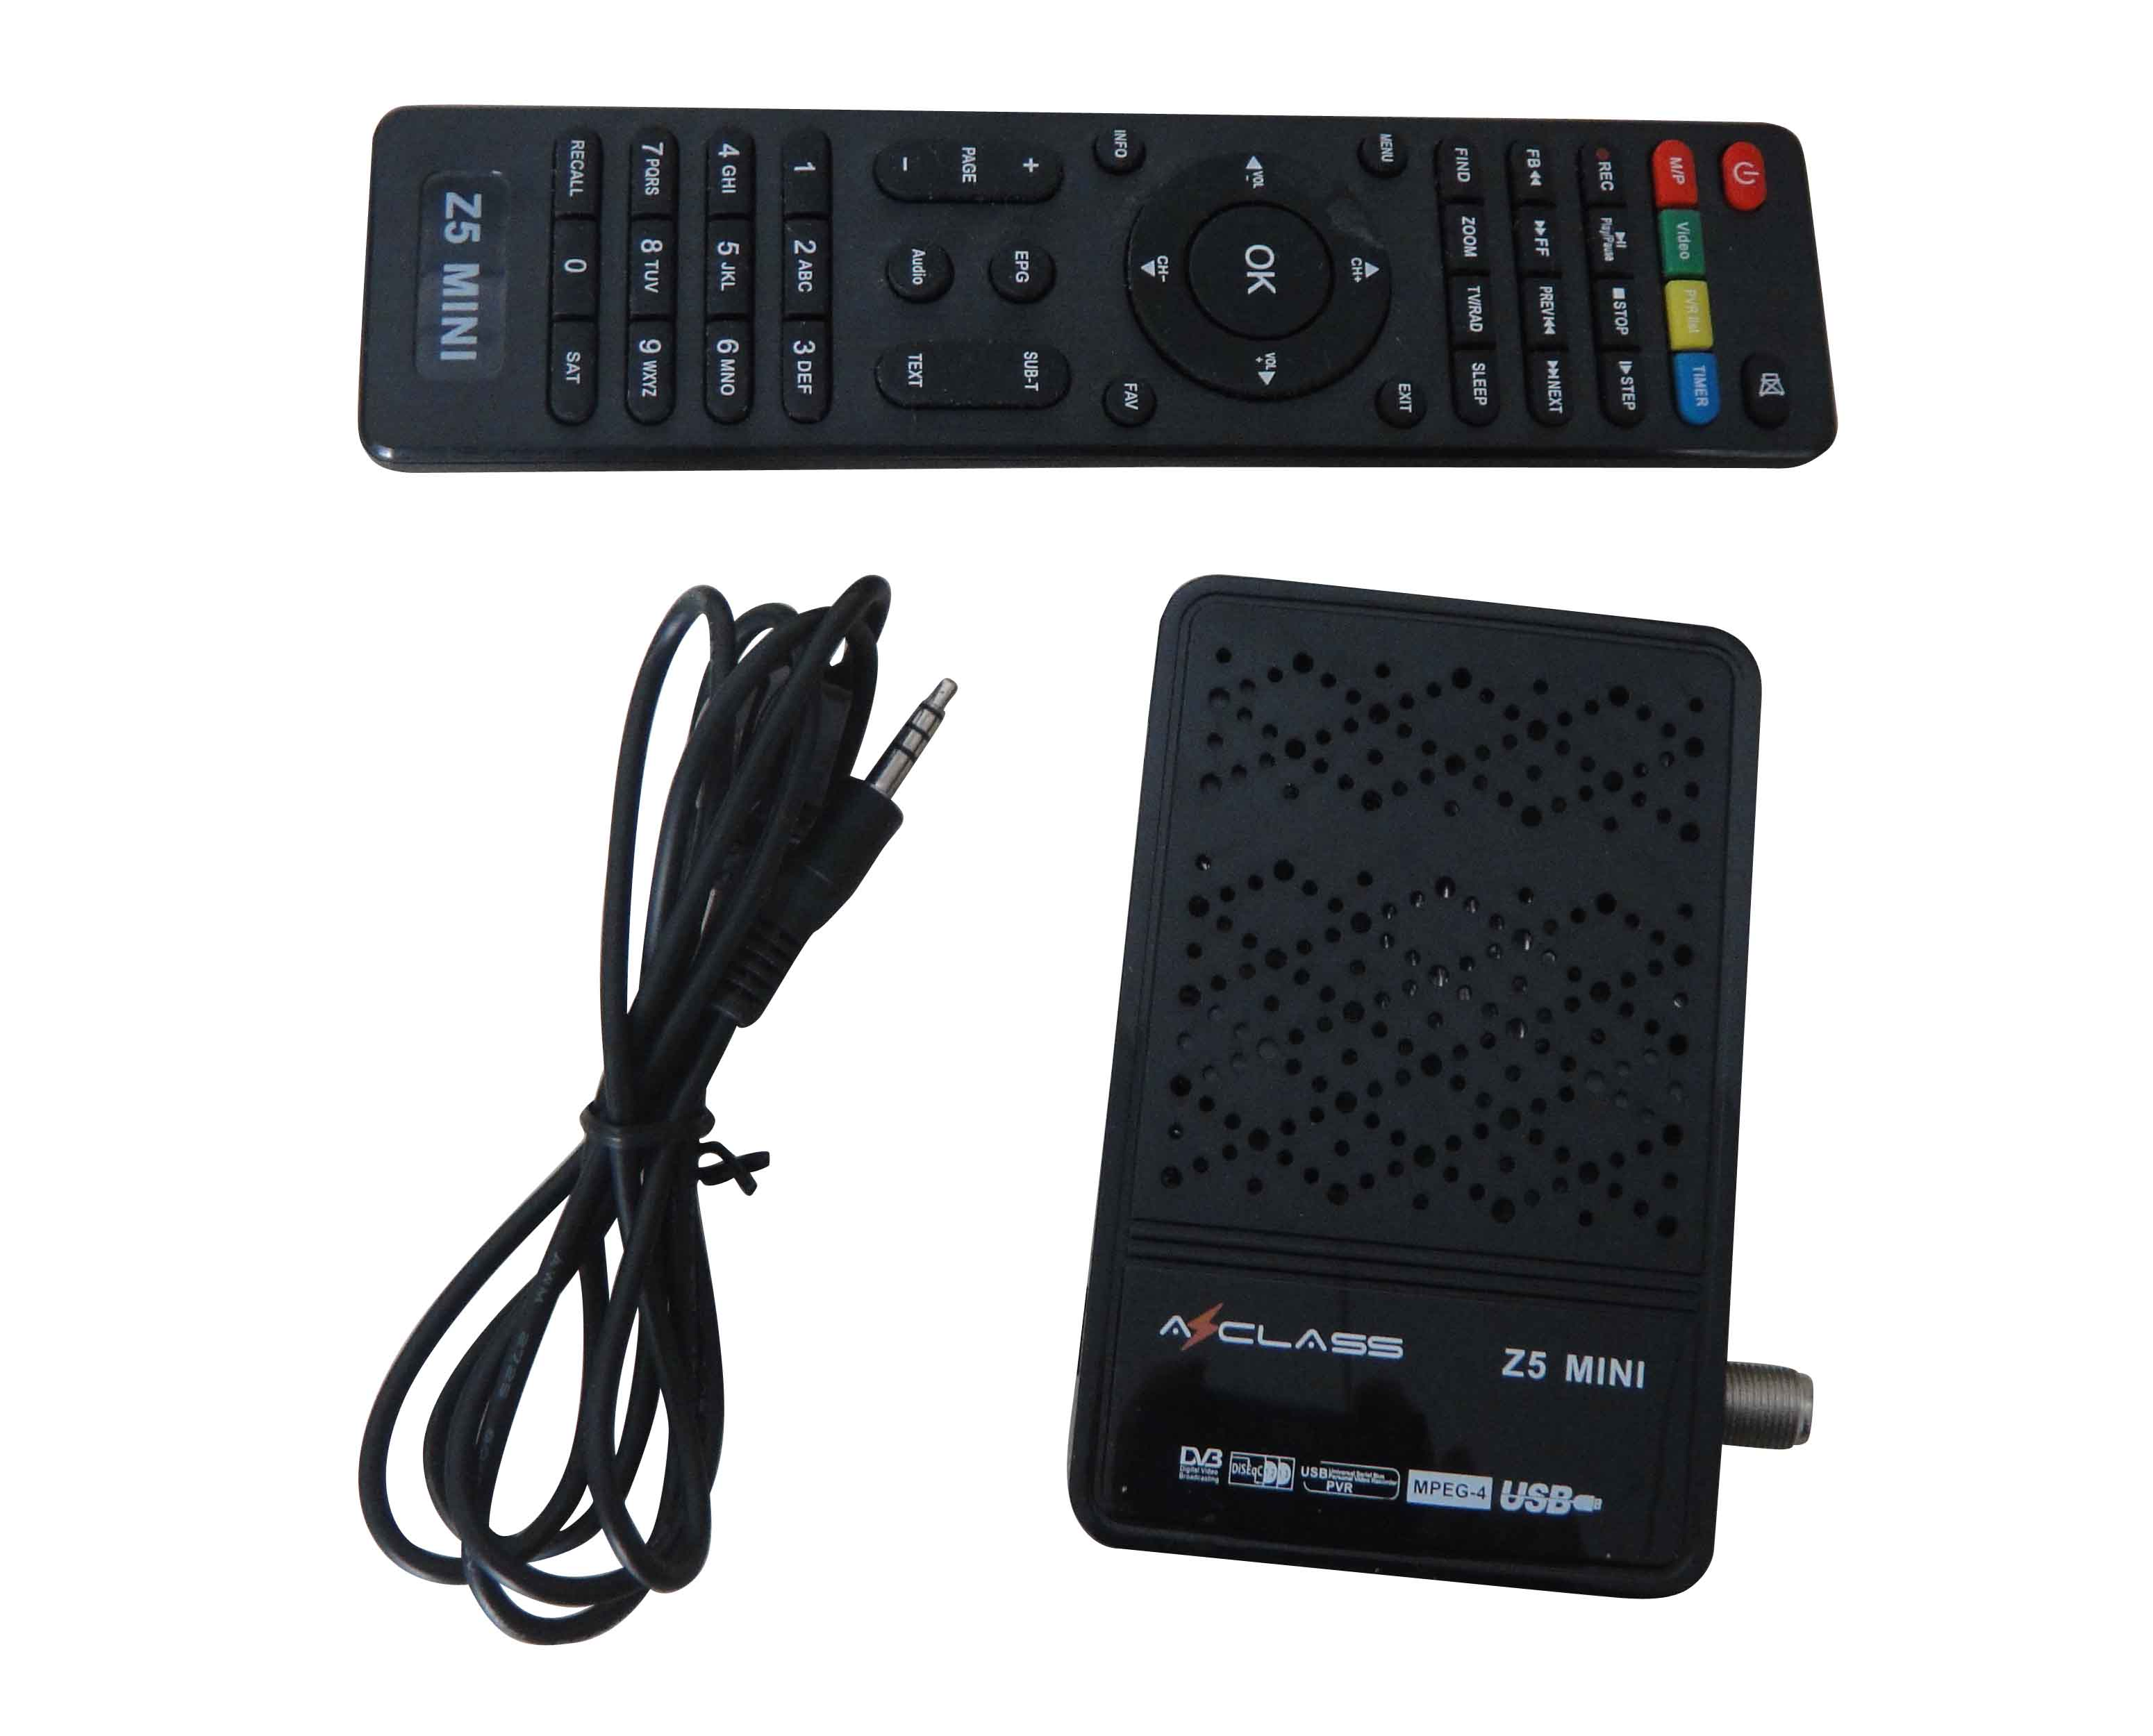 Strong Hd Receiver Mini Azclass Z5 Support Iptv+youtube+3g+wifi - Buy Full  Hd Mini Azclass Z5,Remote Control Direct Tv,Satellite Tv In Car Product on